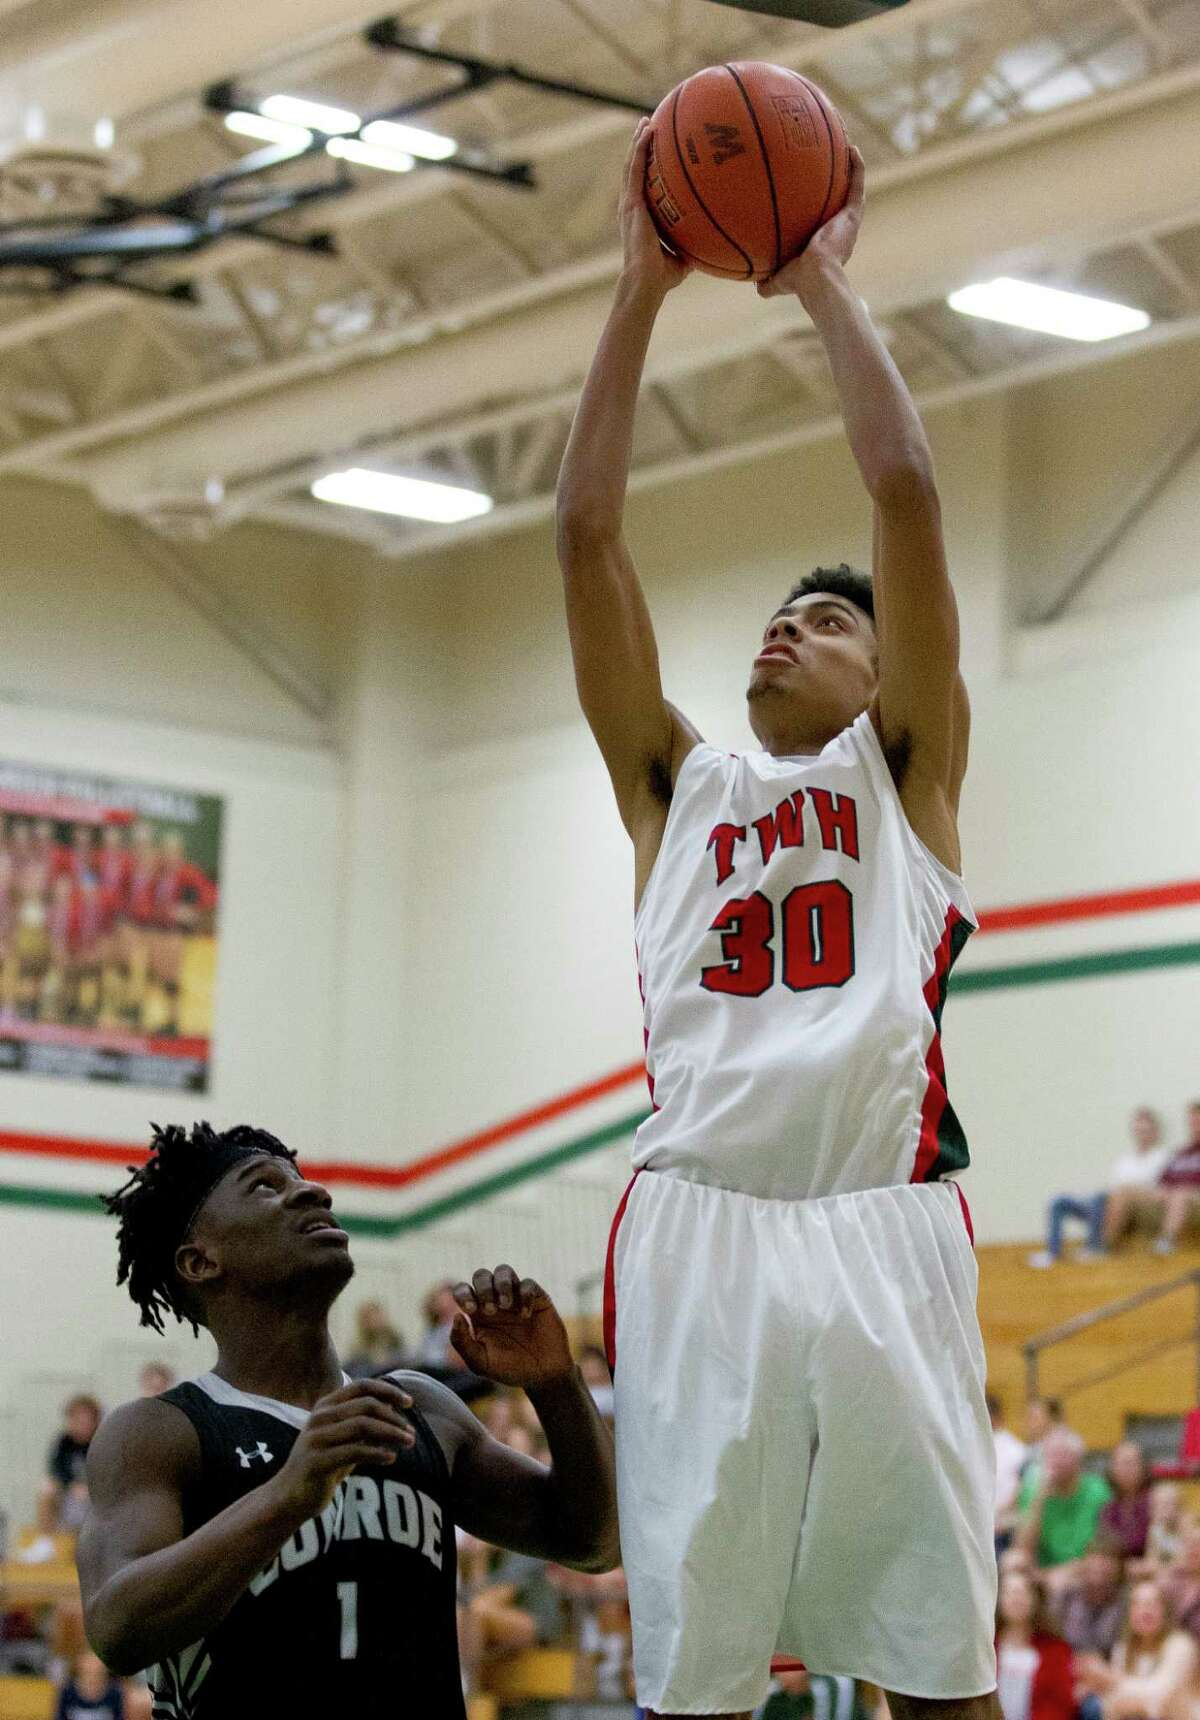 The Woodlands guard Sammy Williams (30) shoots over Conroe guard Jay Lewis (1) during the first quarter of a District 12-6A high school boys basketball game at The Woodlands High School Tuesday, Feb. 7, 2017, in The Woodlands. The Woodlandsdefeated Conroe 72-52.